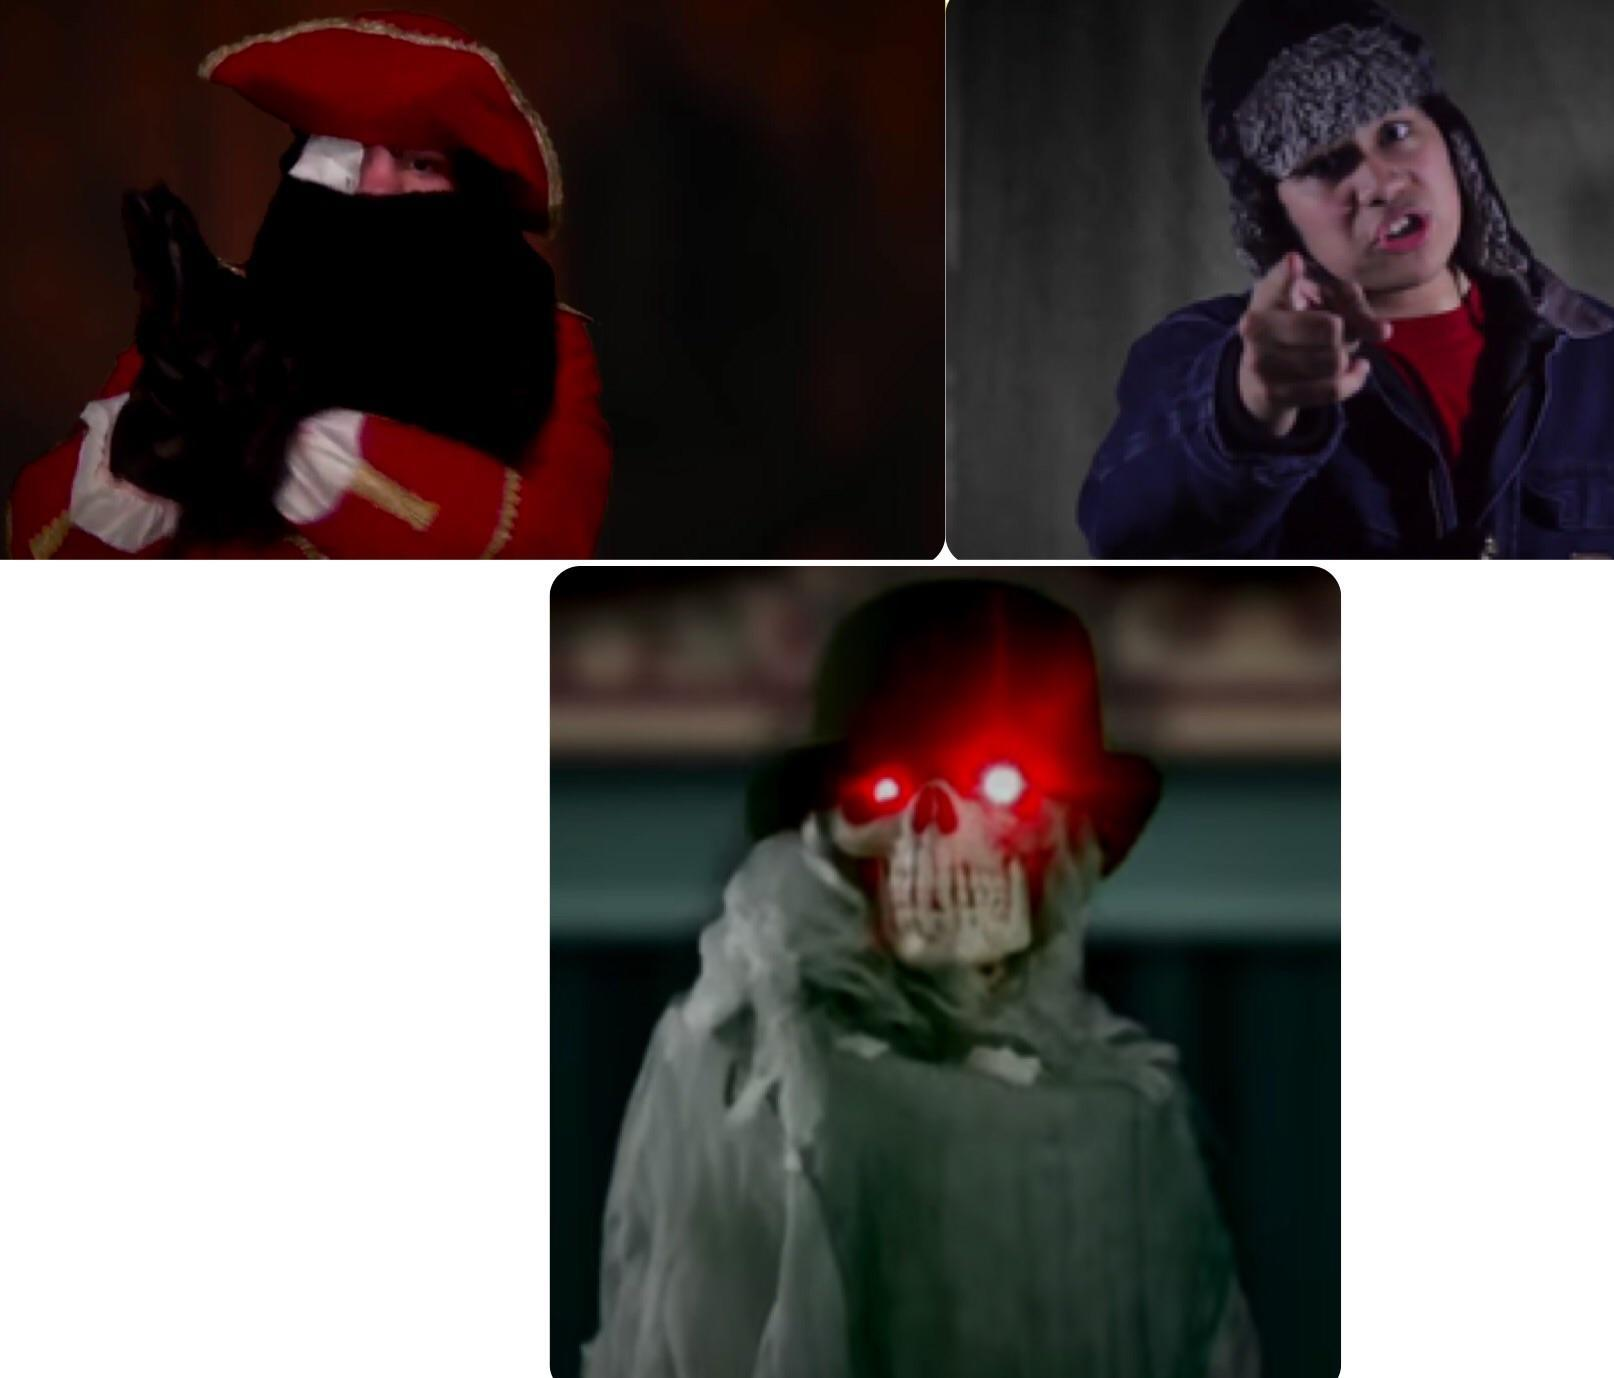 Skintaker, Pirate Percy, and Horrible Horrace